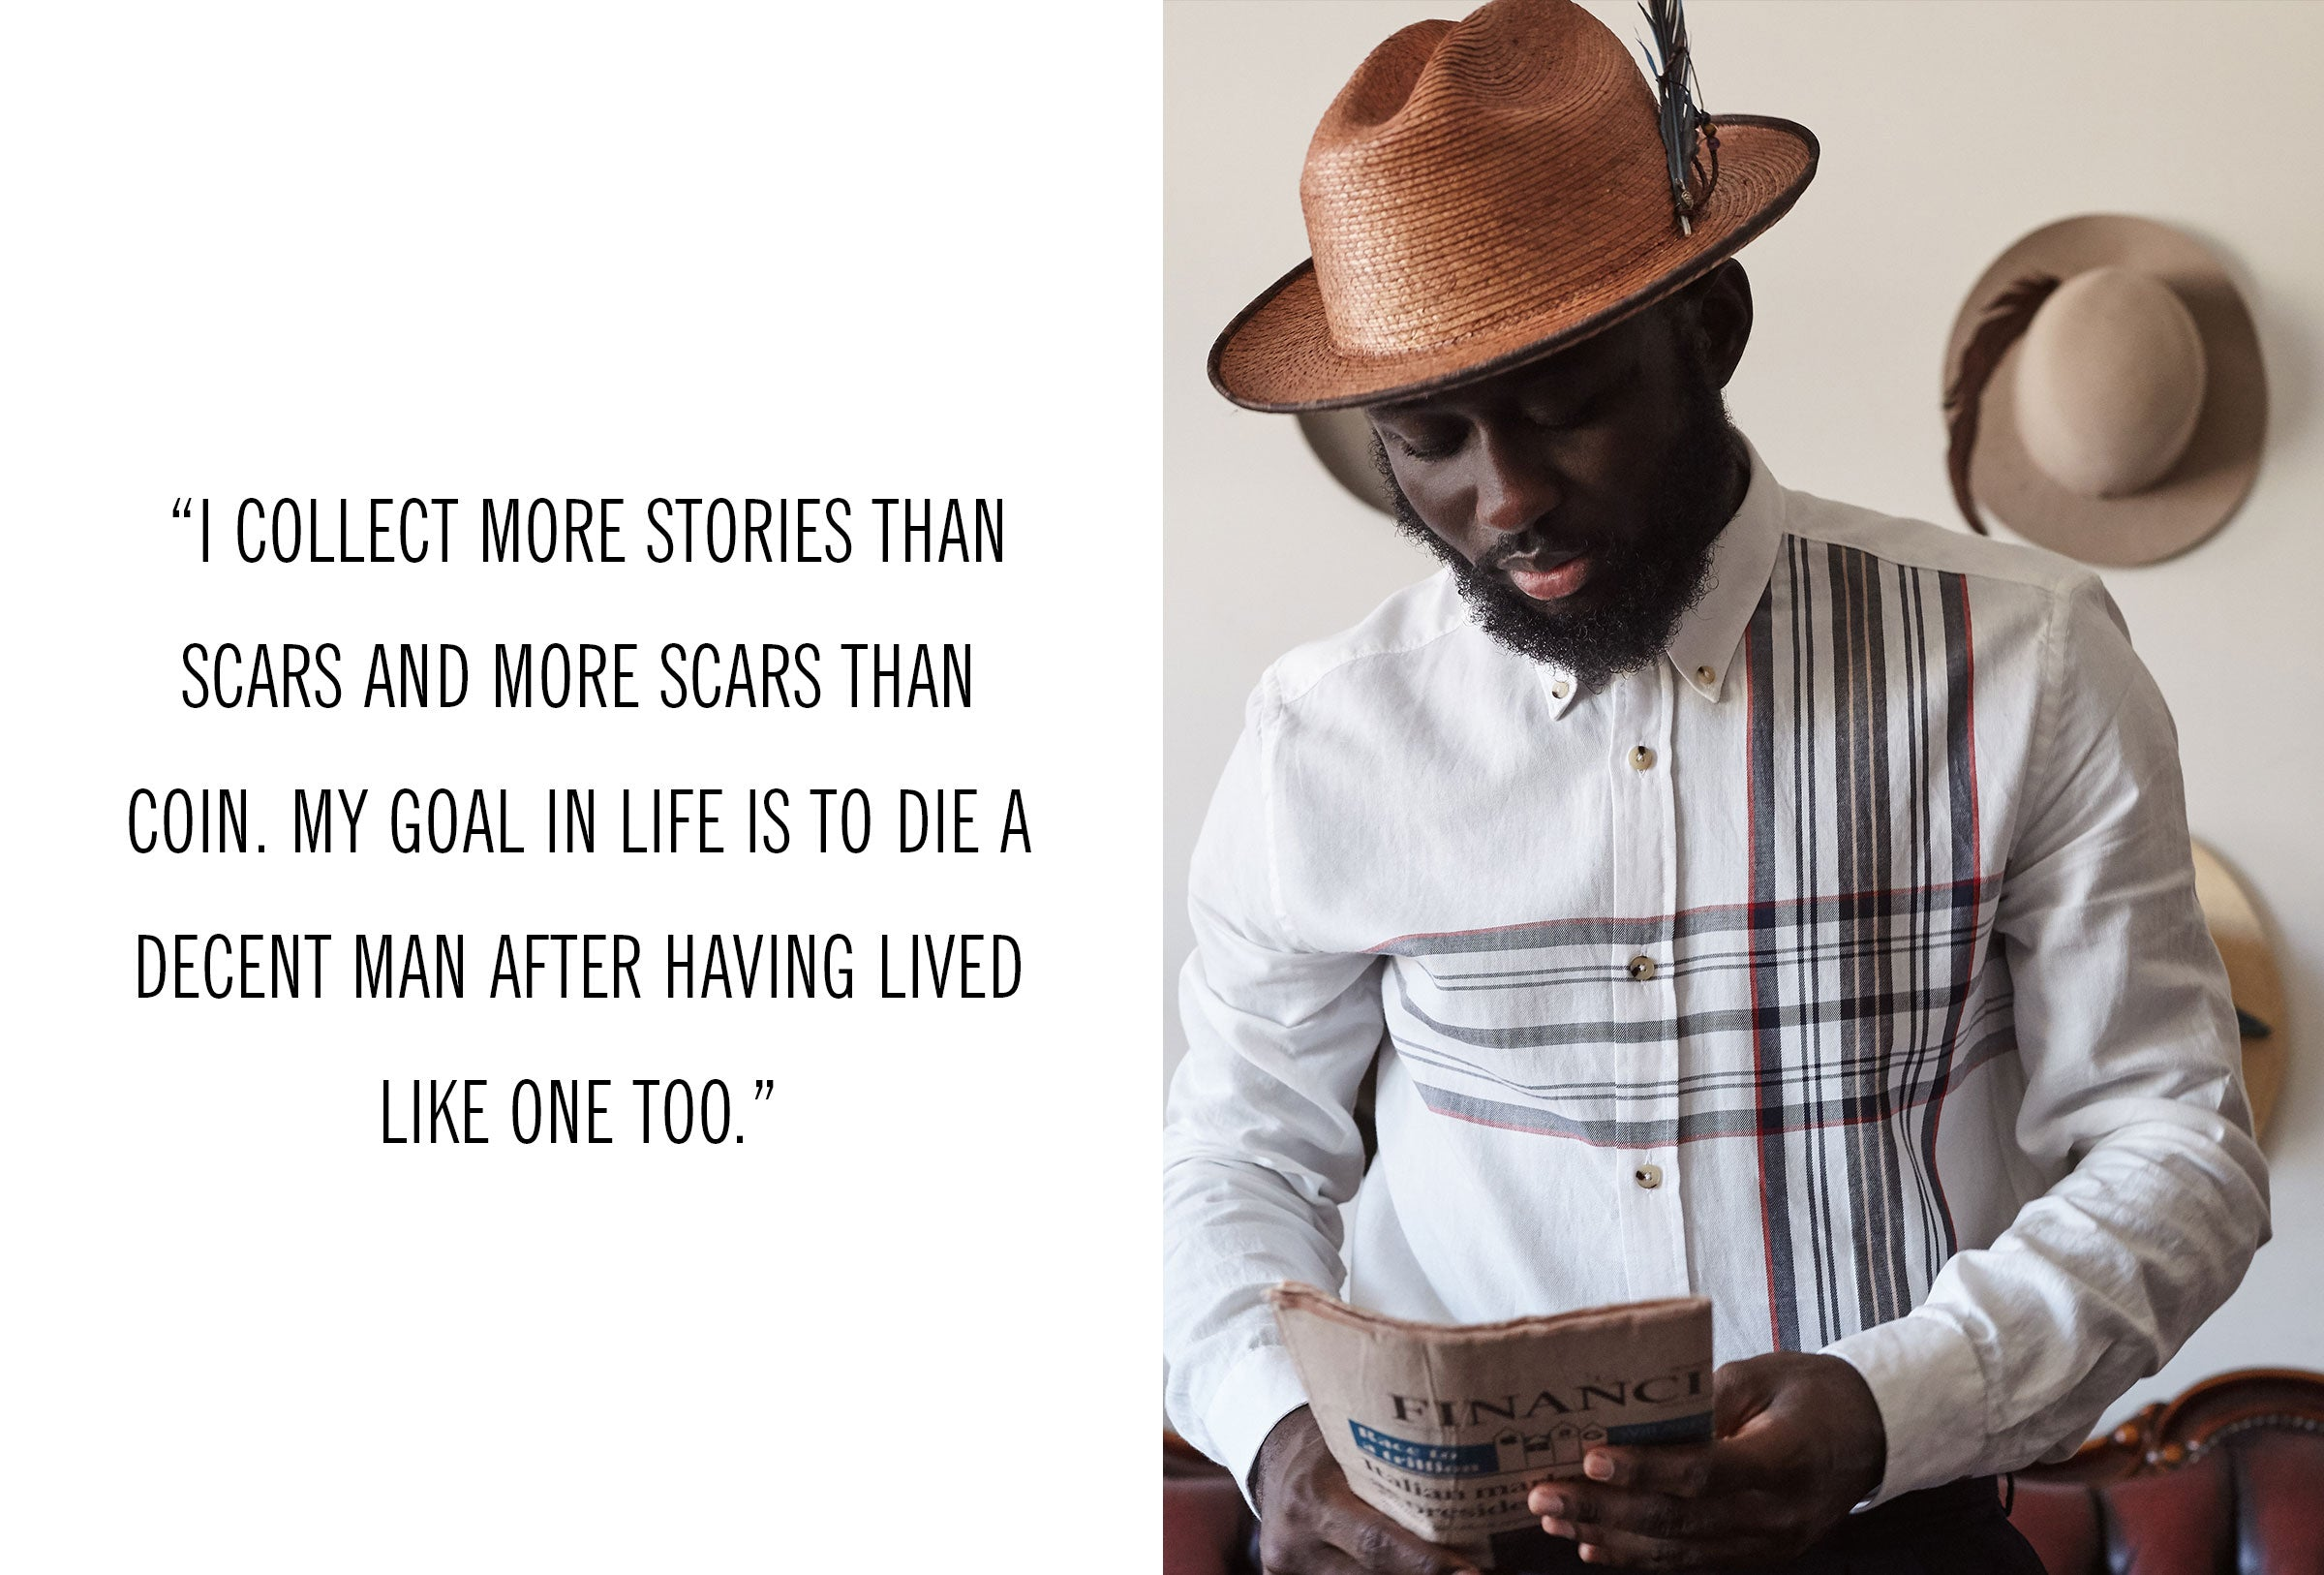 """I collect more stories than scars and more scars than coin."" - Steven Onoja"